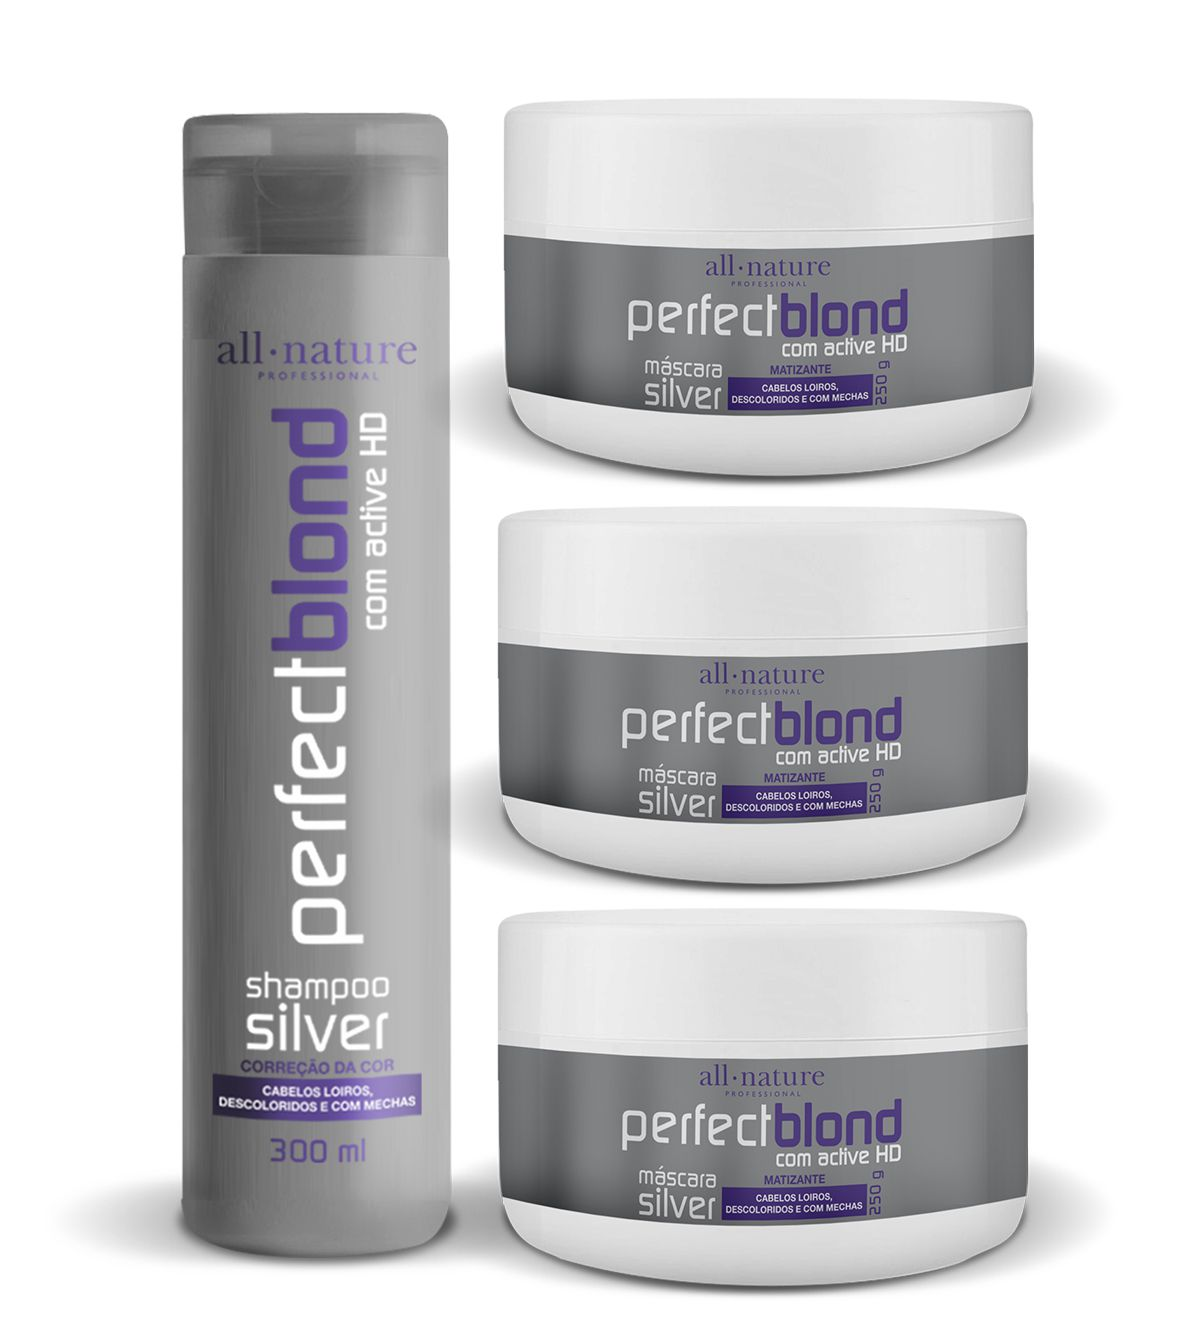 Kit Com 3 Máscaras Silver Matizantes 250g + 1 Shampoo Silver Matizante 300ml - All Nature